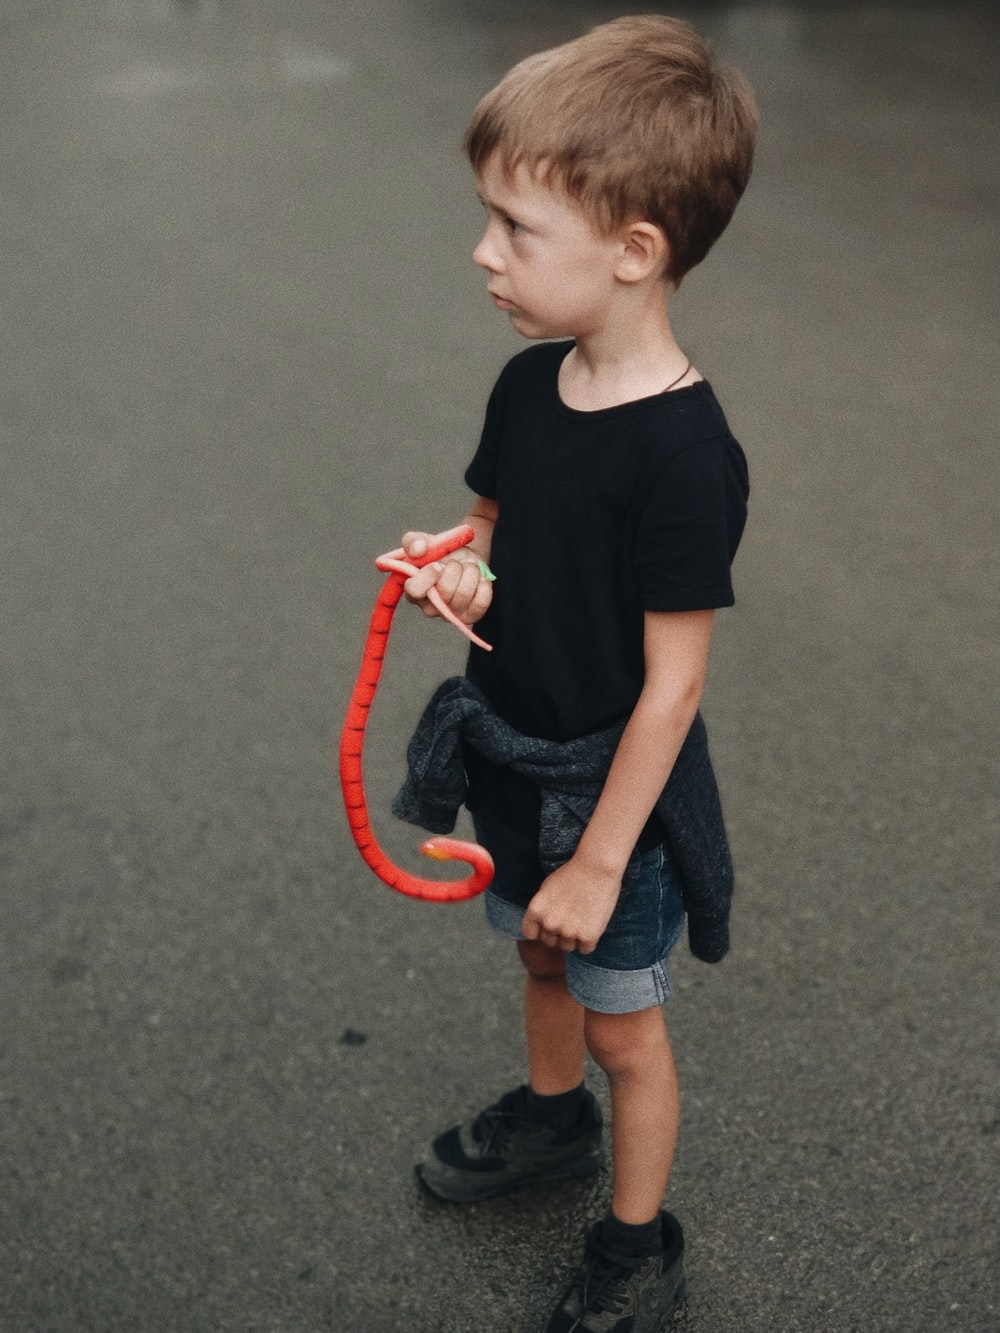 boy holding red snake toy